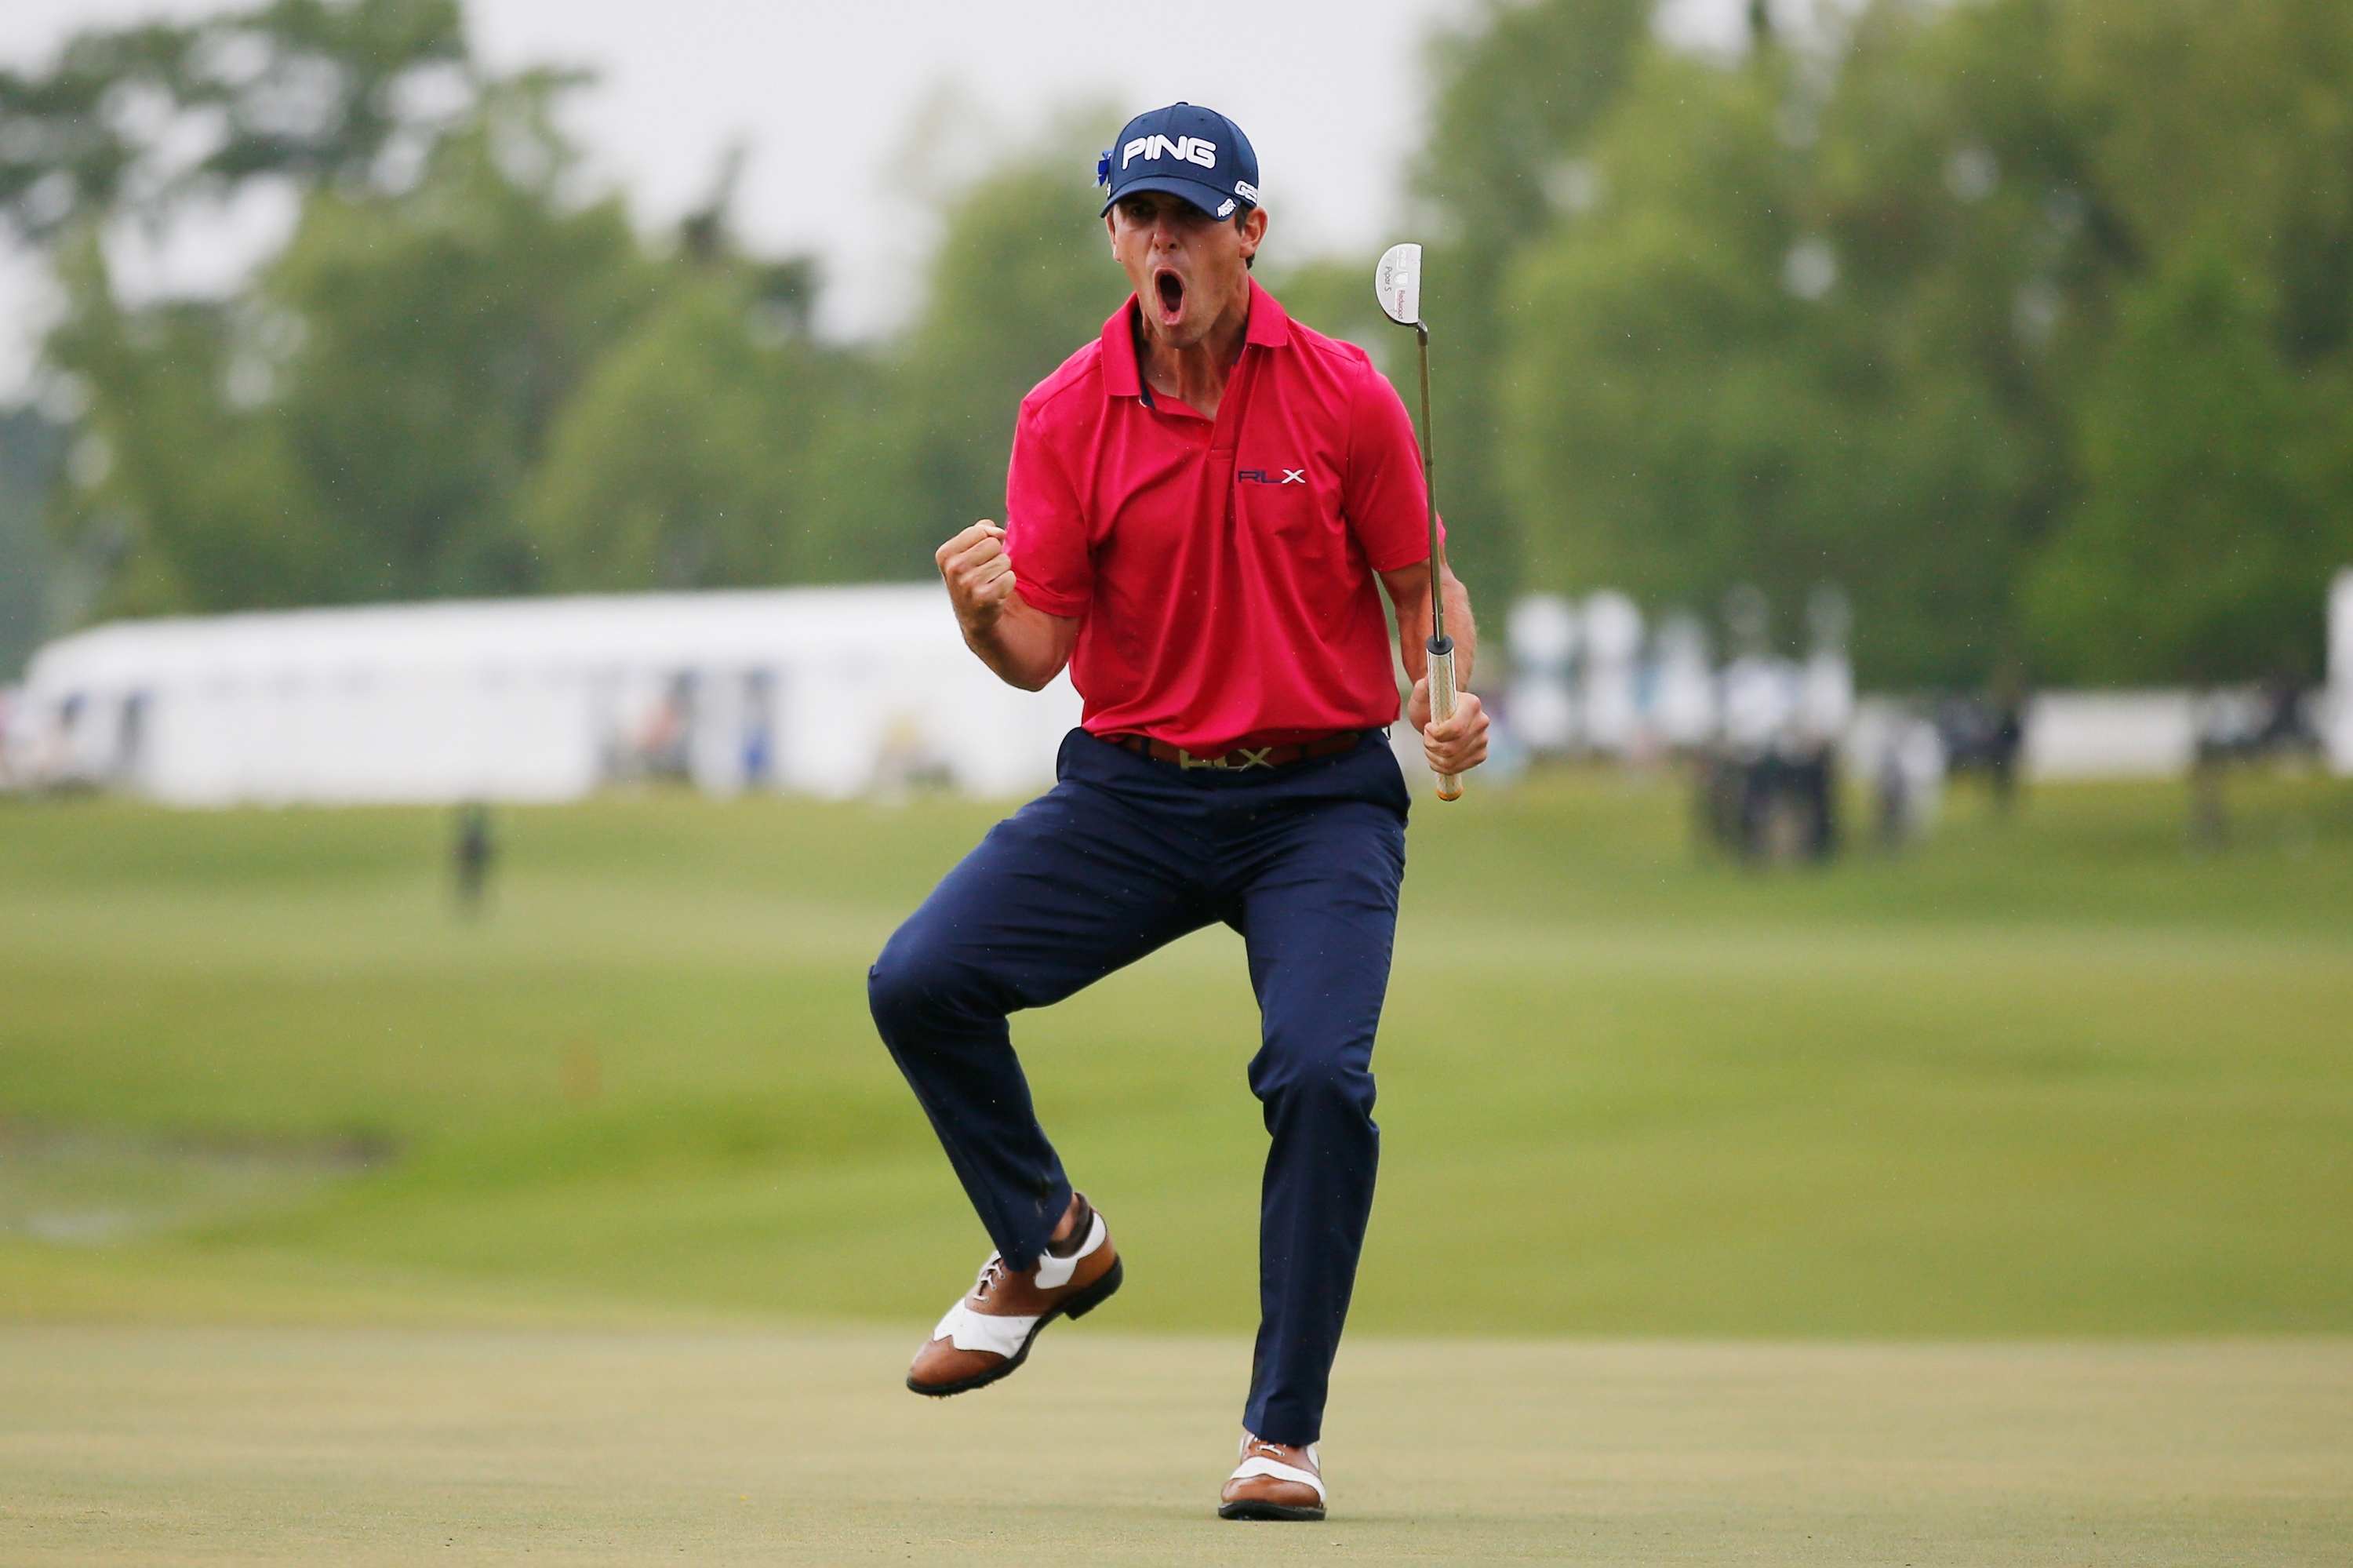 Billy Horschel reacts after making a putt for birdie on the 18th hole Sunday. (Getty)